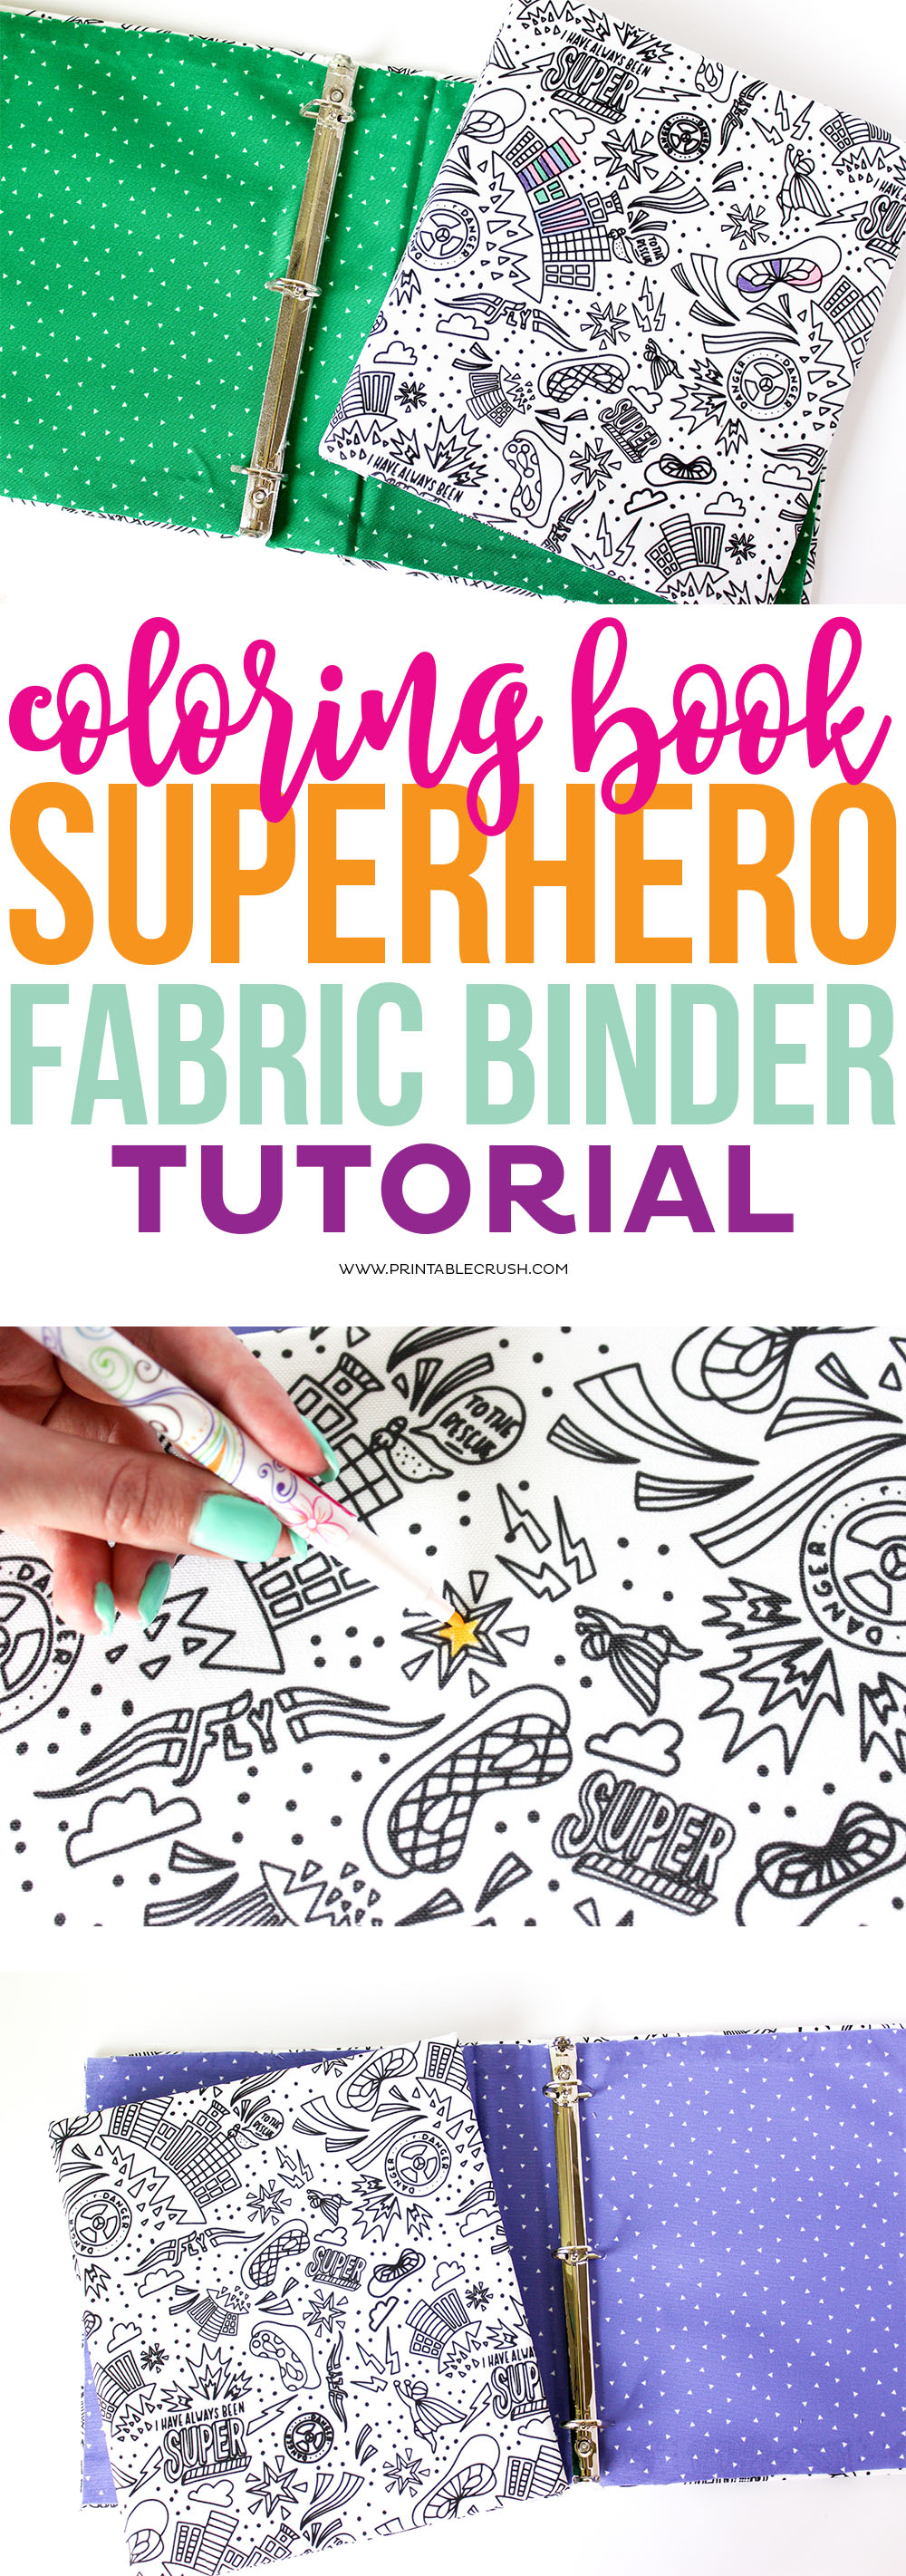 This Coloring Book Superhero Fabric Binder Tutorial is great for boys or girls! They'll love this back to school project!